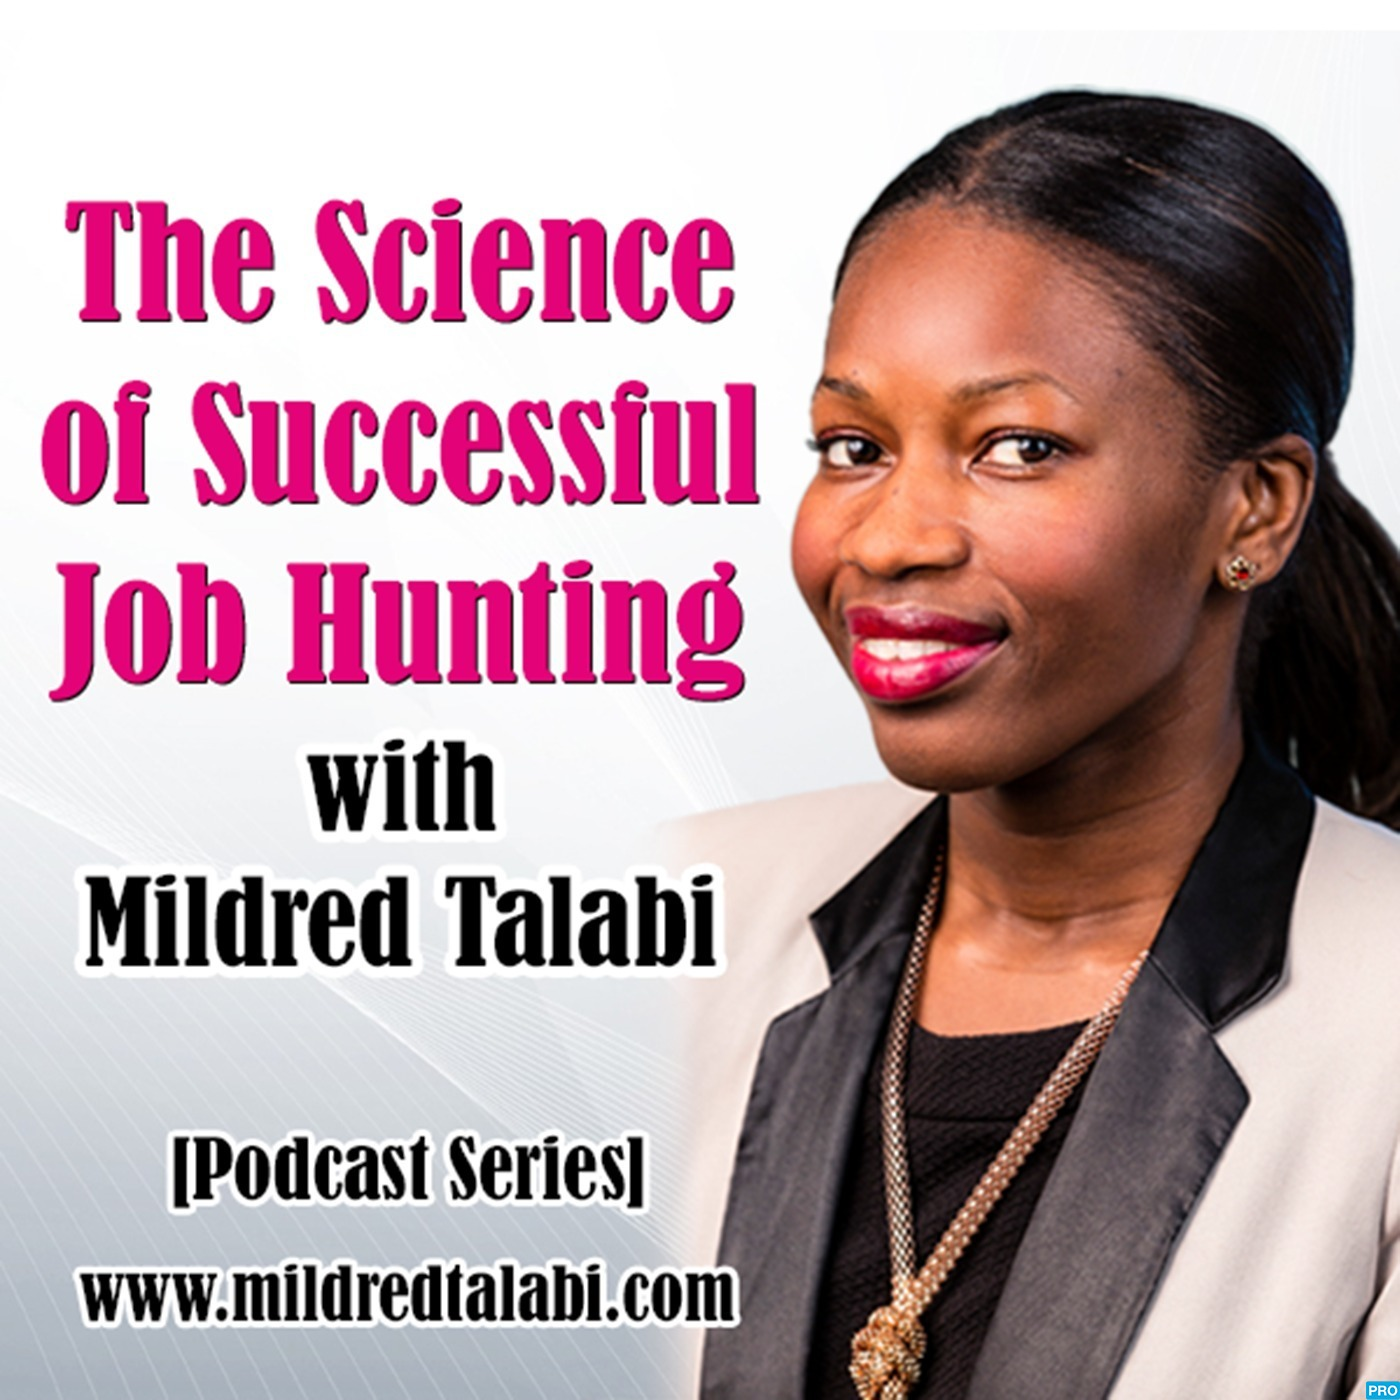 The Science of Successful Job Hunting